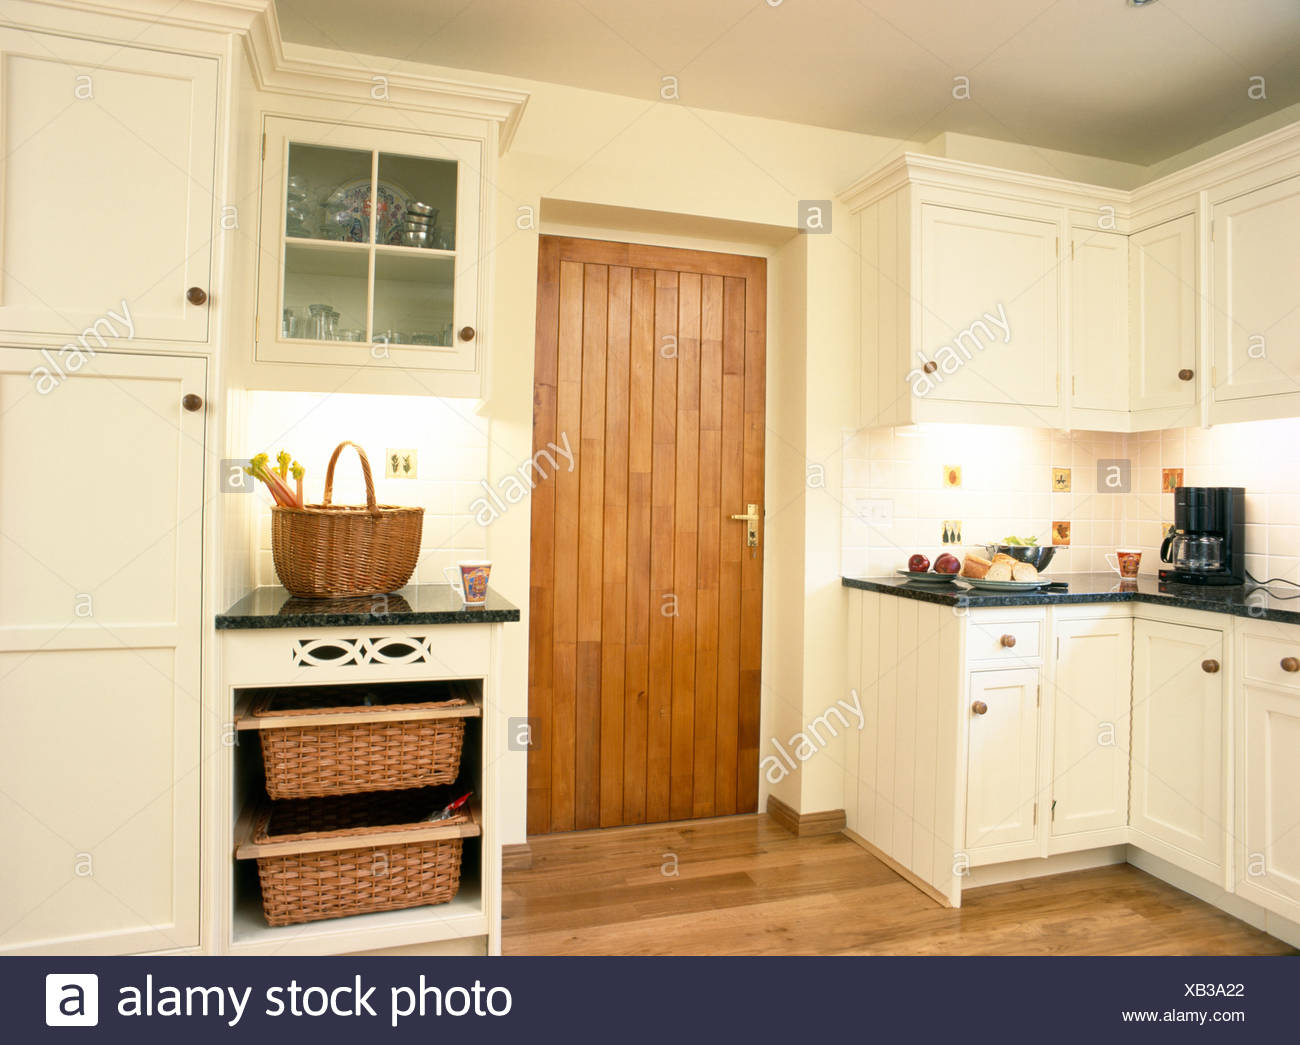 Delicieux Storage Baskets In Fitted Unit Beside Wooden Door In Cream Country Kitchen